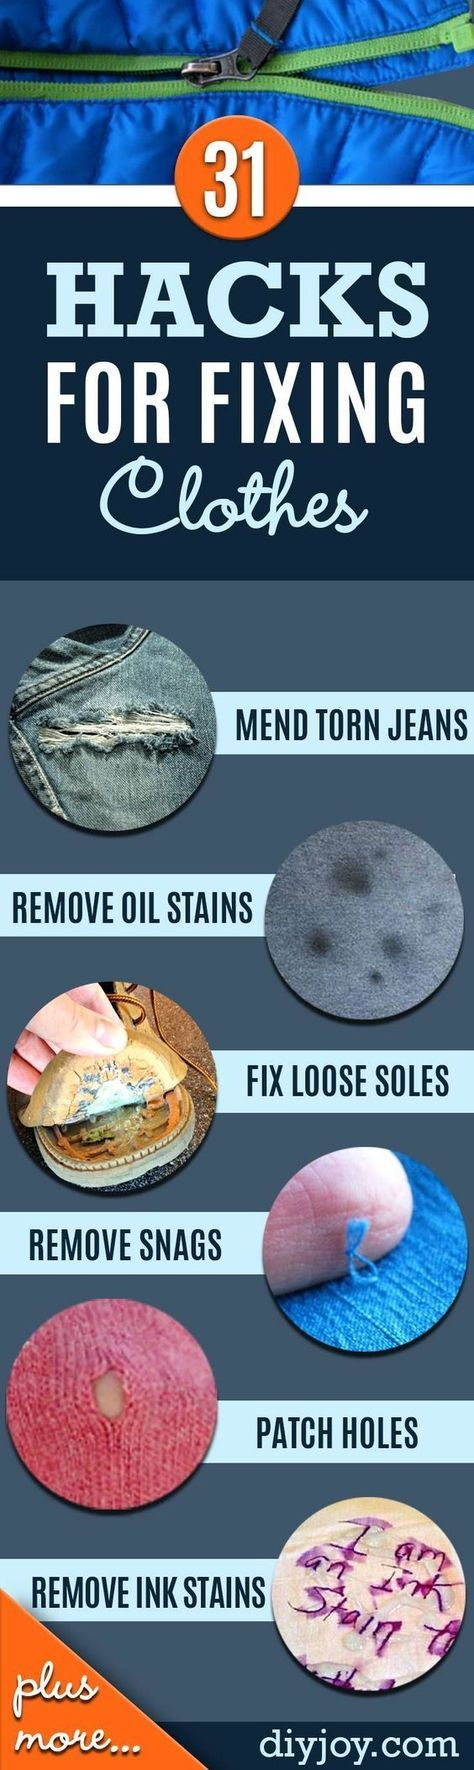 These 10 Awesome Fashion Tips and Hacks Posts are THE BEST! I've found A LOT different ideas and my wardrobe has already benefited! I am DEFINITELY pinning for later!